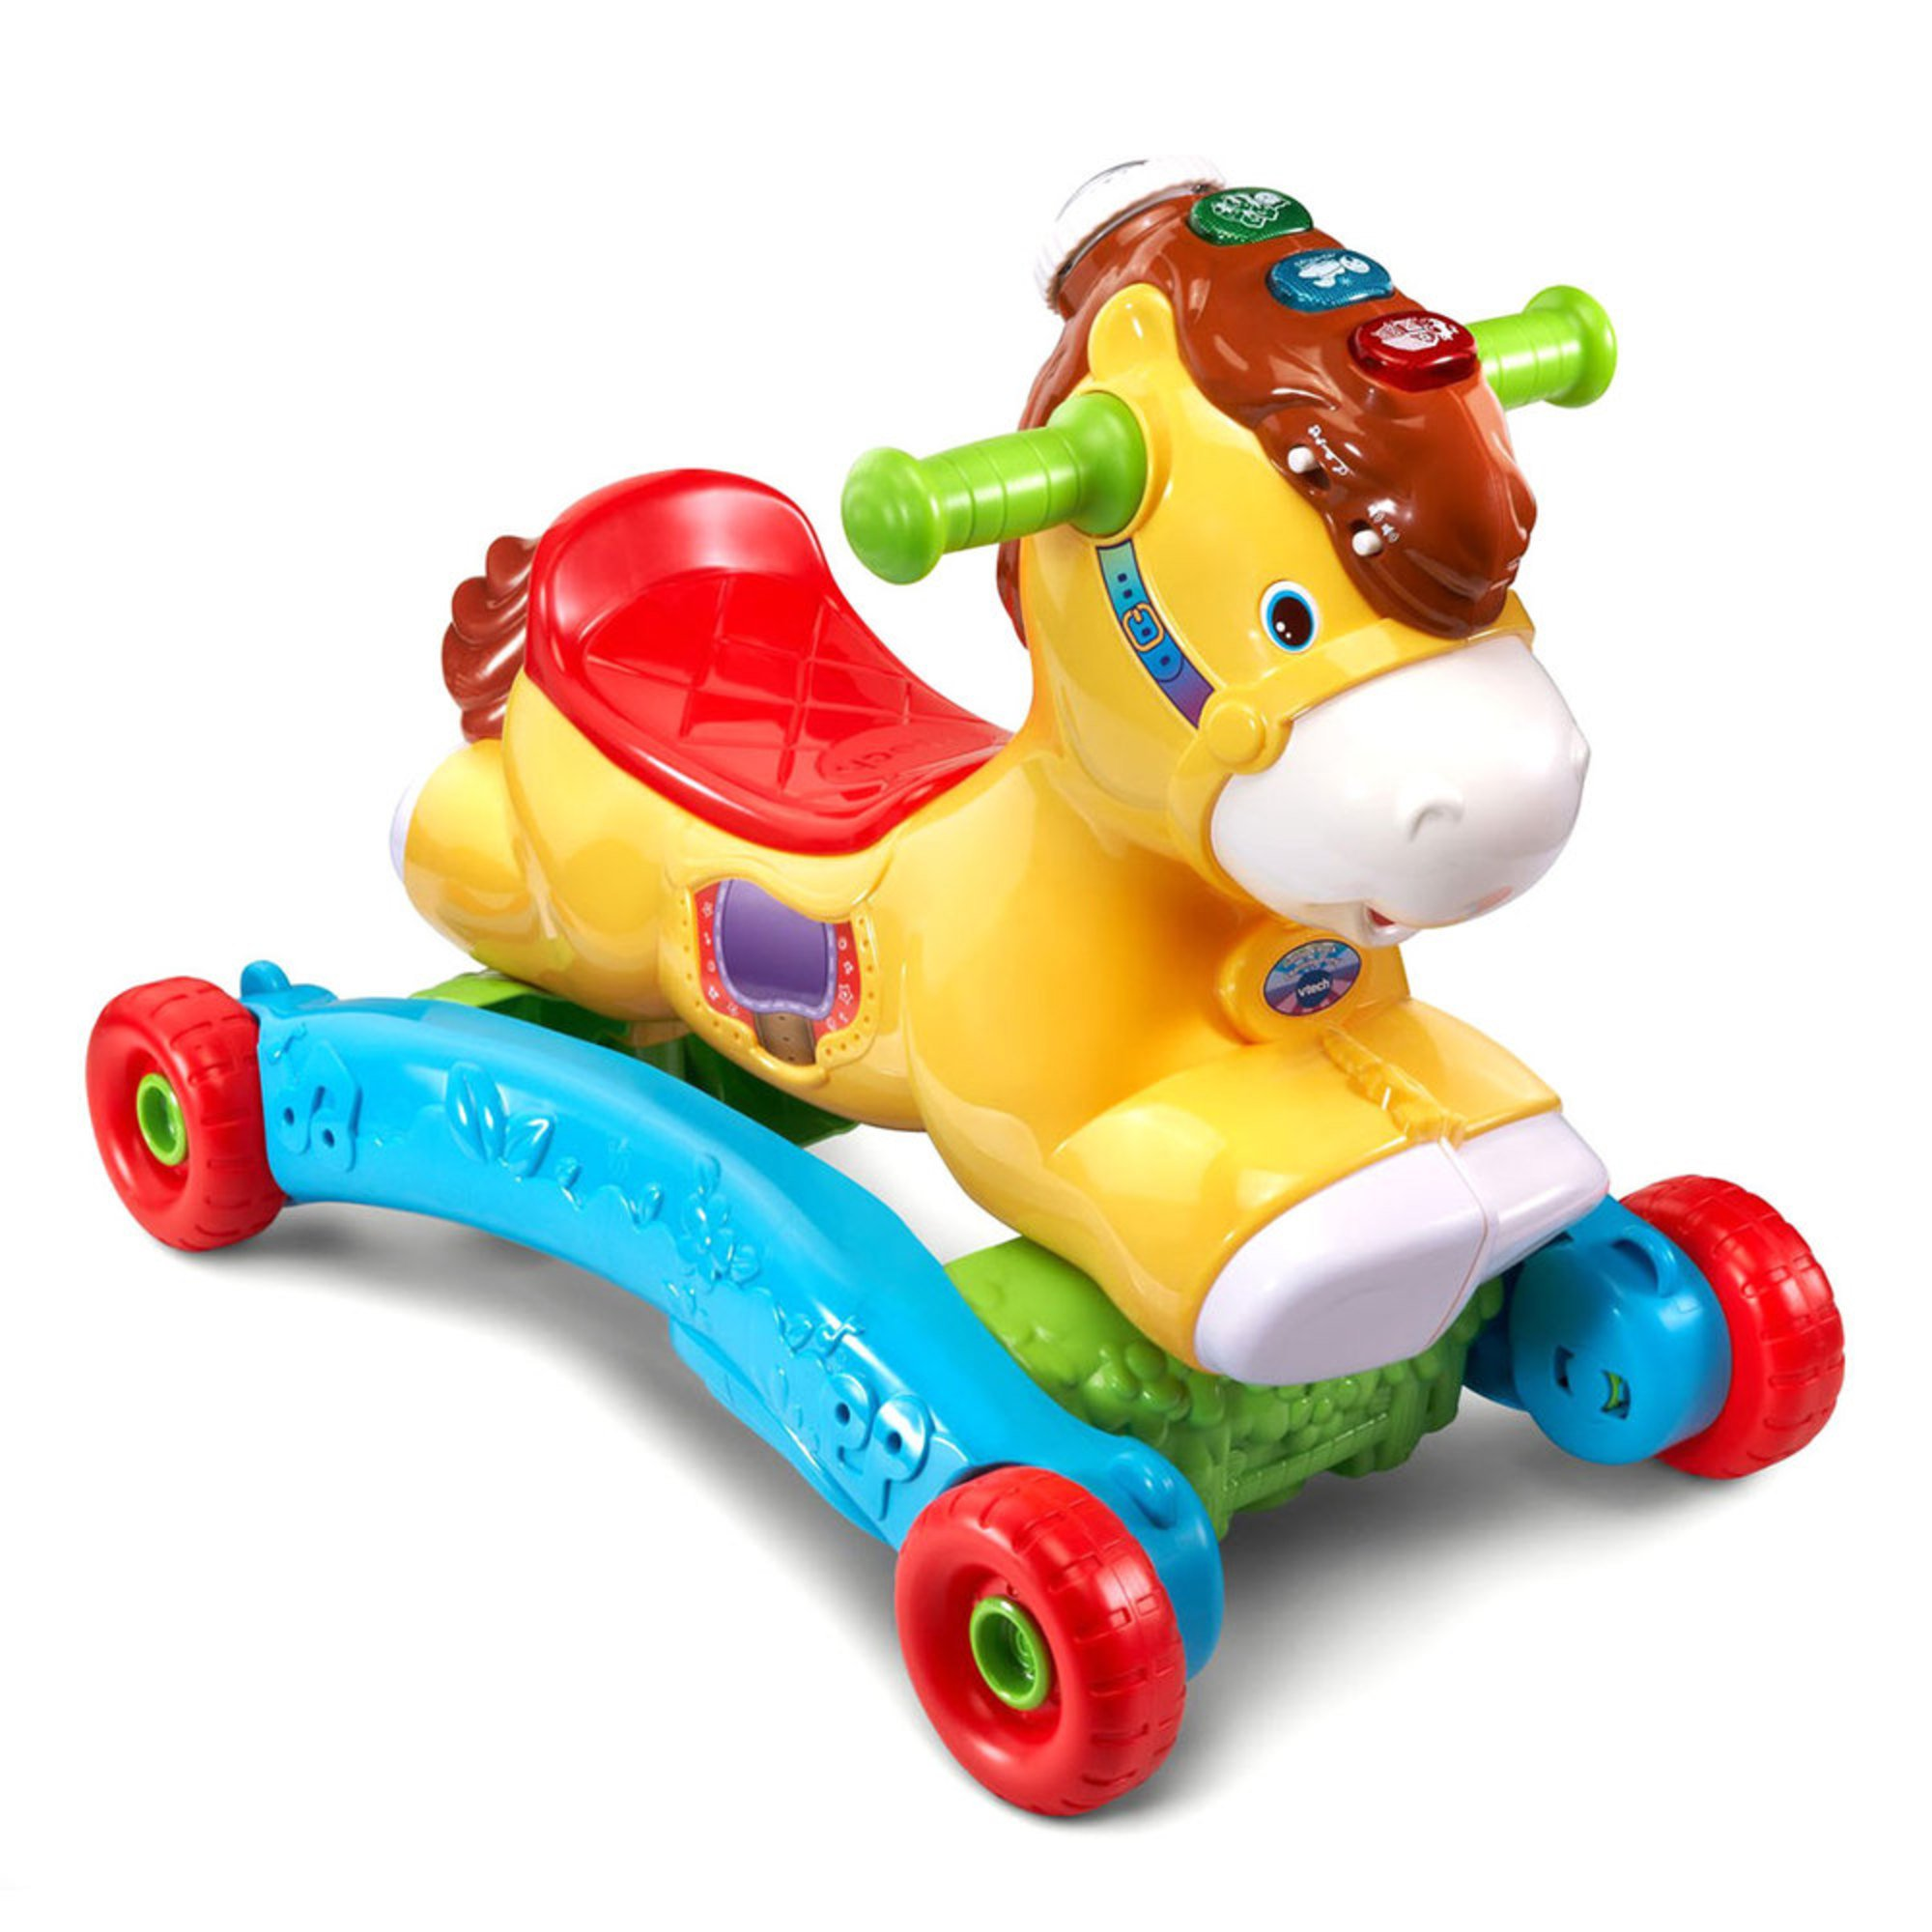 Target Riding Toys For Boys : Vtech gallop rock learning pony early toys